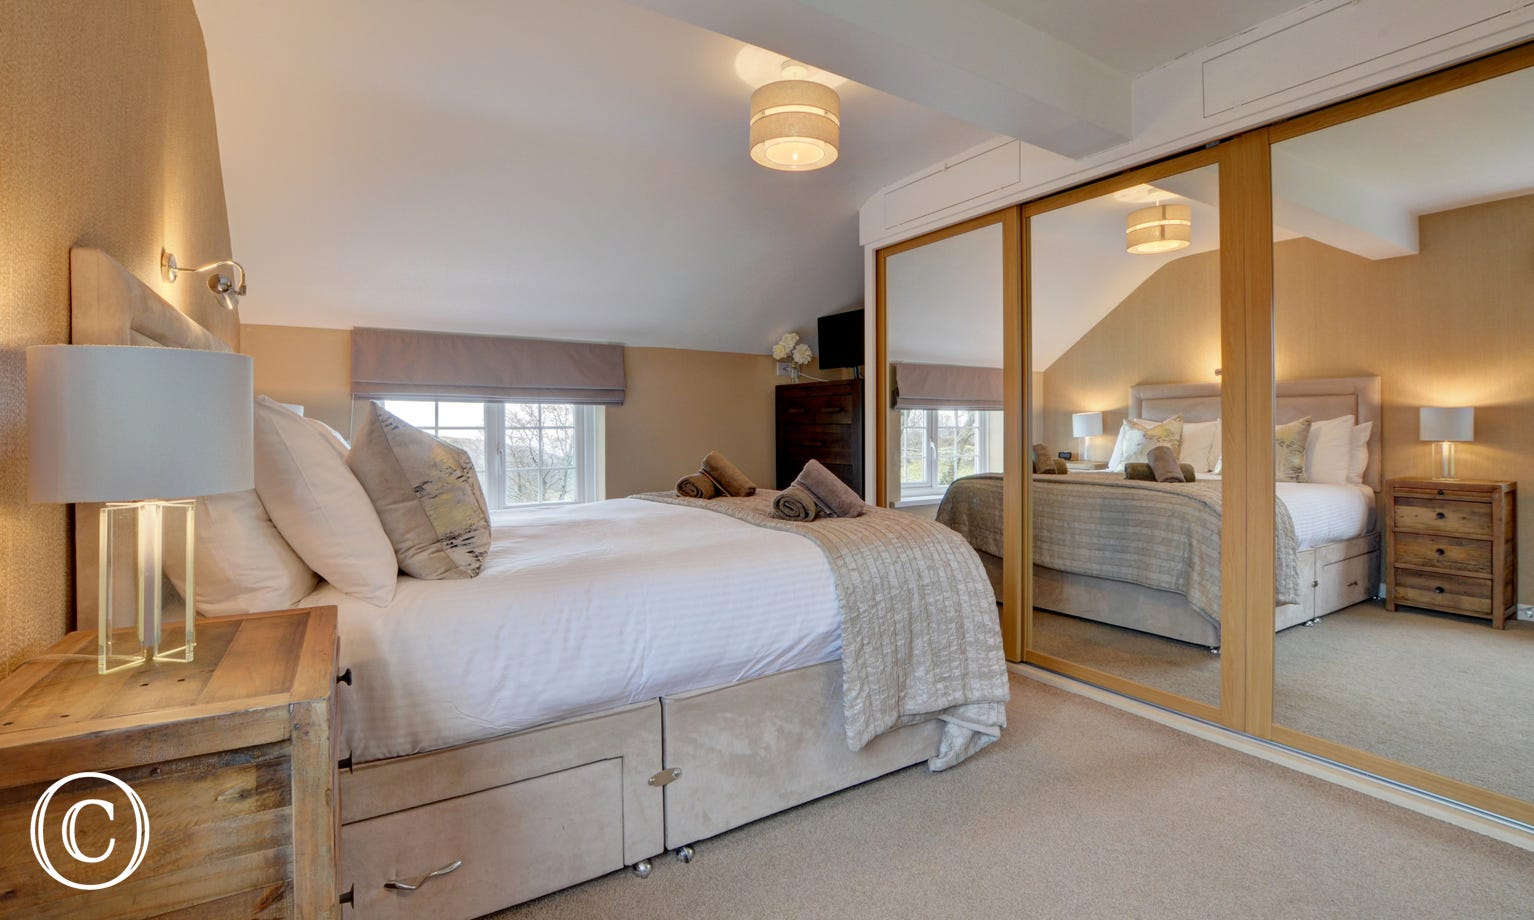 The master bedroom has a very comfortable bed and TV as well as an ensuite bathroom